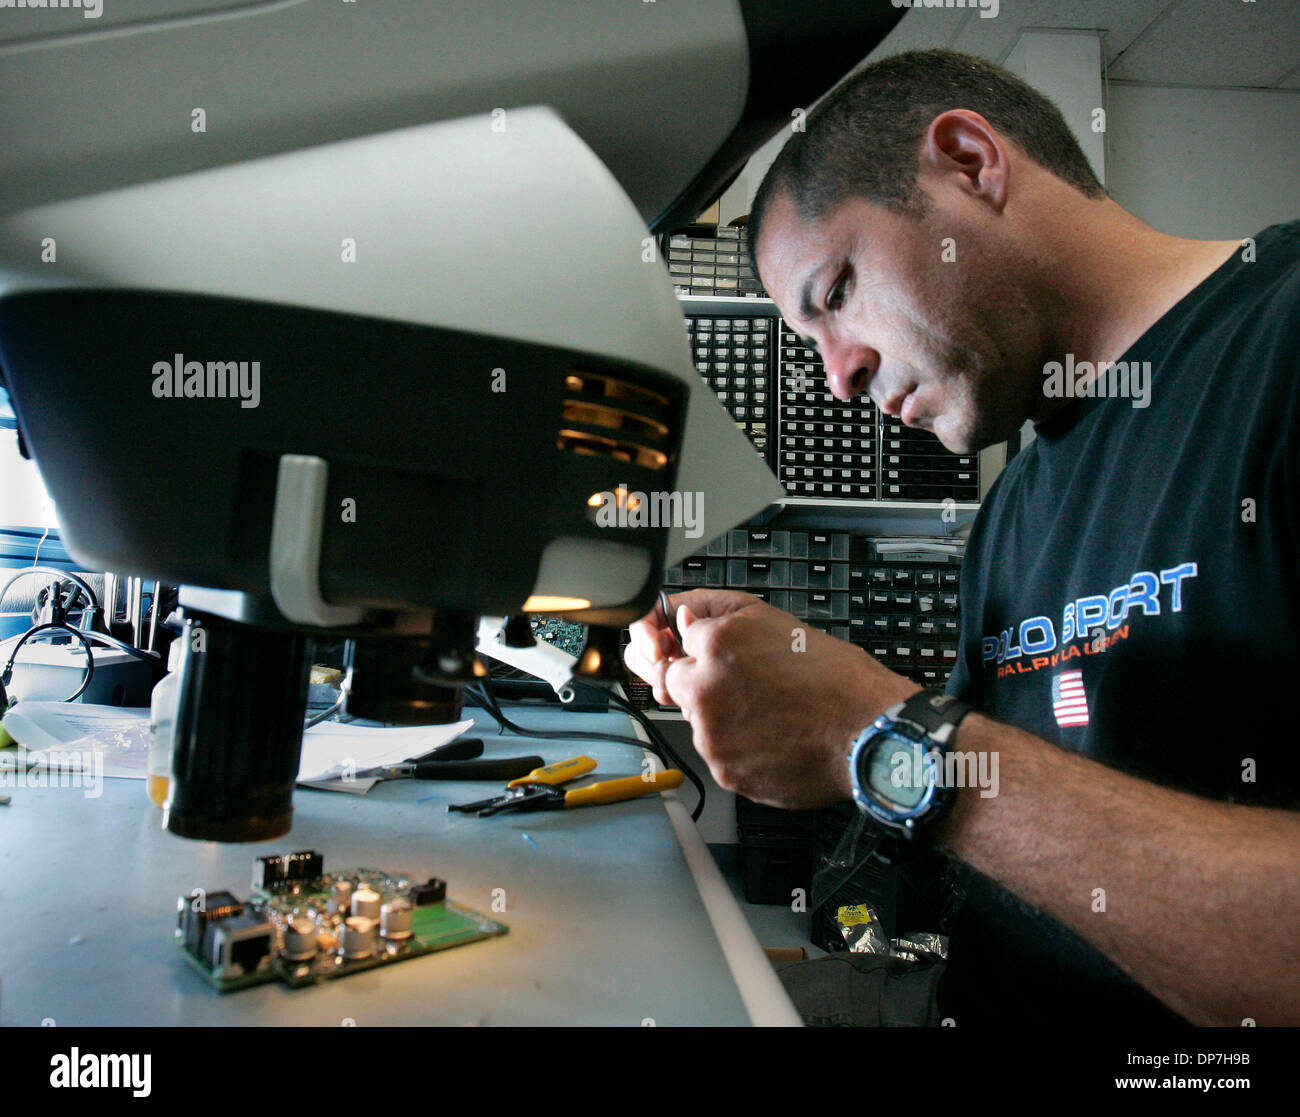 Aug 31, 2006; Rancho Bernardo, CA, USA; Sensoria Corp. senior engineering technican DAVID BOYETT assembles a small printed circuit board using a microscope to aid in soldering small parts.  Sensoria Corp. makes wireless networks that are used not only by the military but also by universities and  municipalities that want to offer wireless, high-speed Internet access outdoors.   Man - Stock Image